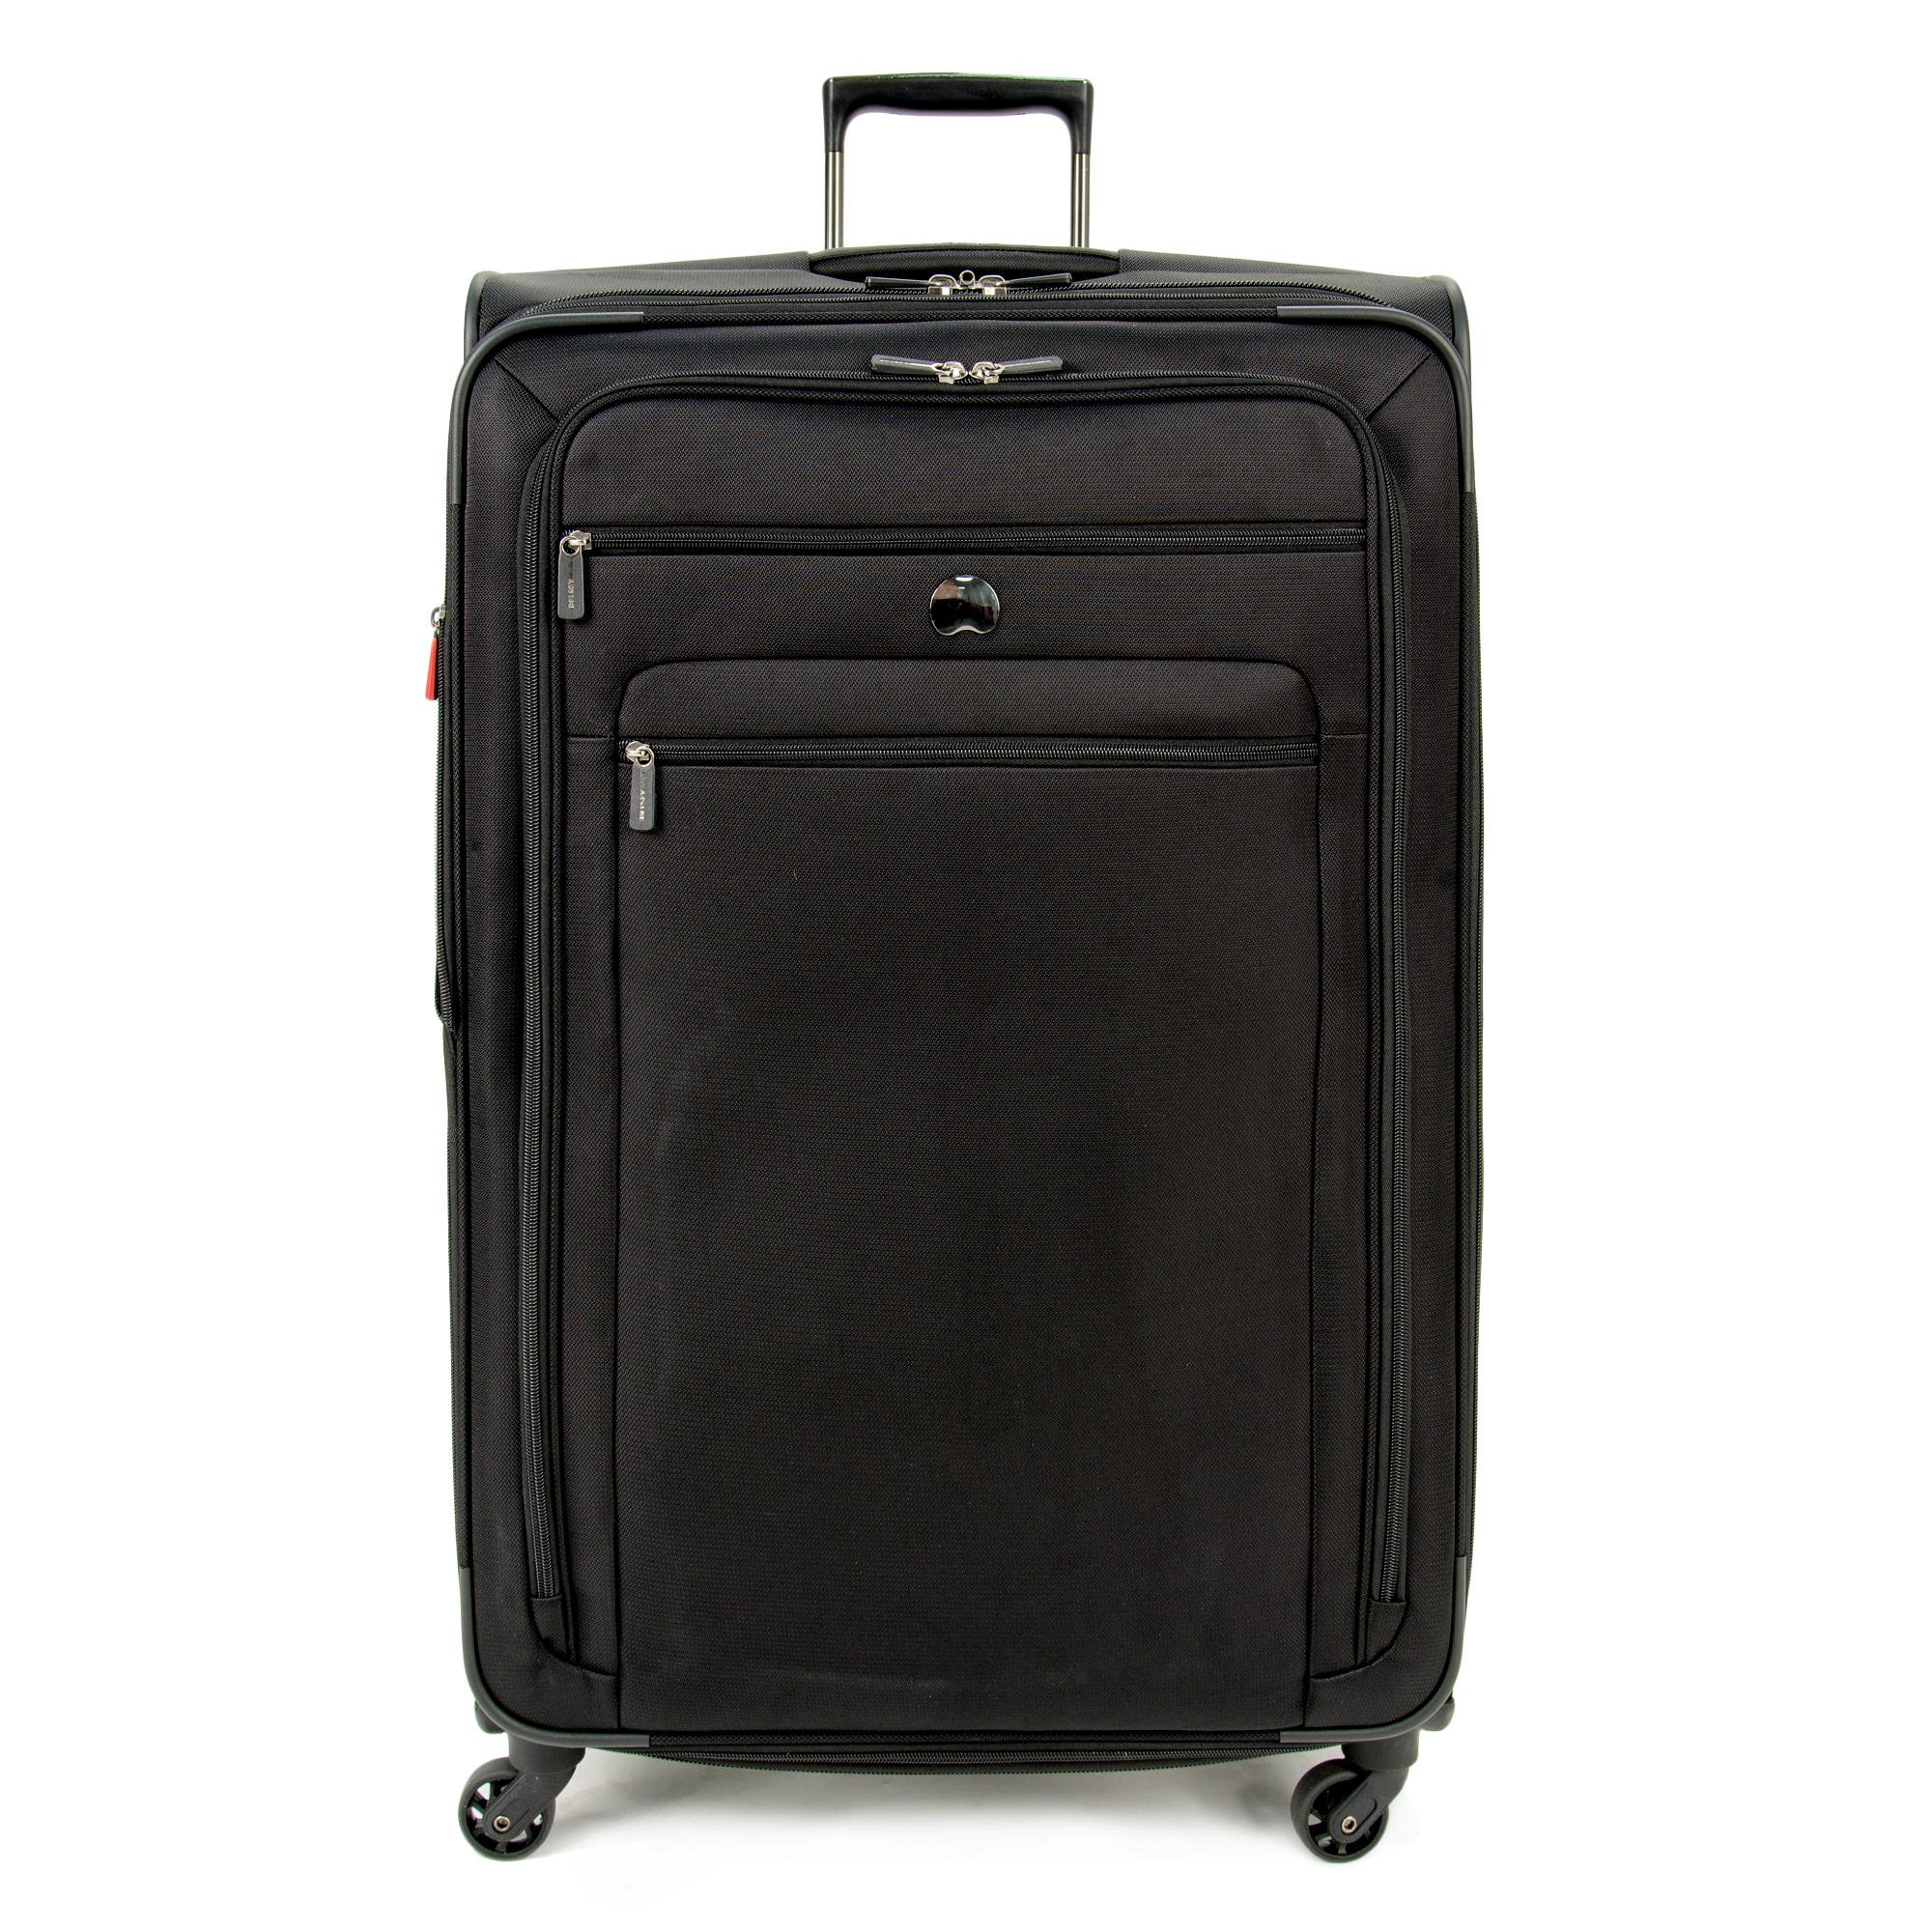 Delsey Luggage Helium Sky 2.0 29'' Expandable Spinner Trolley Suitcase